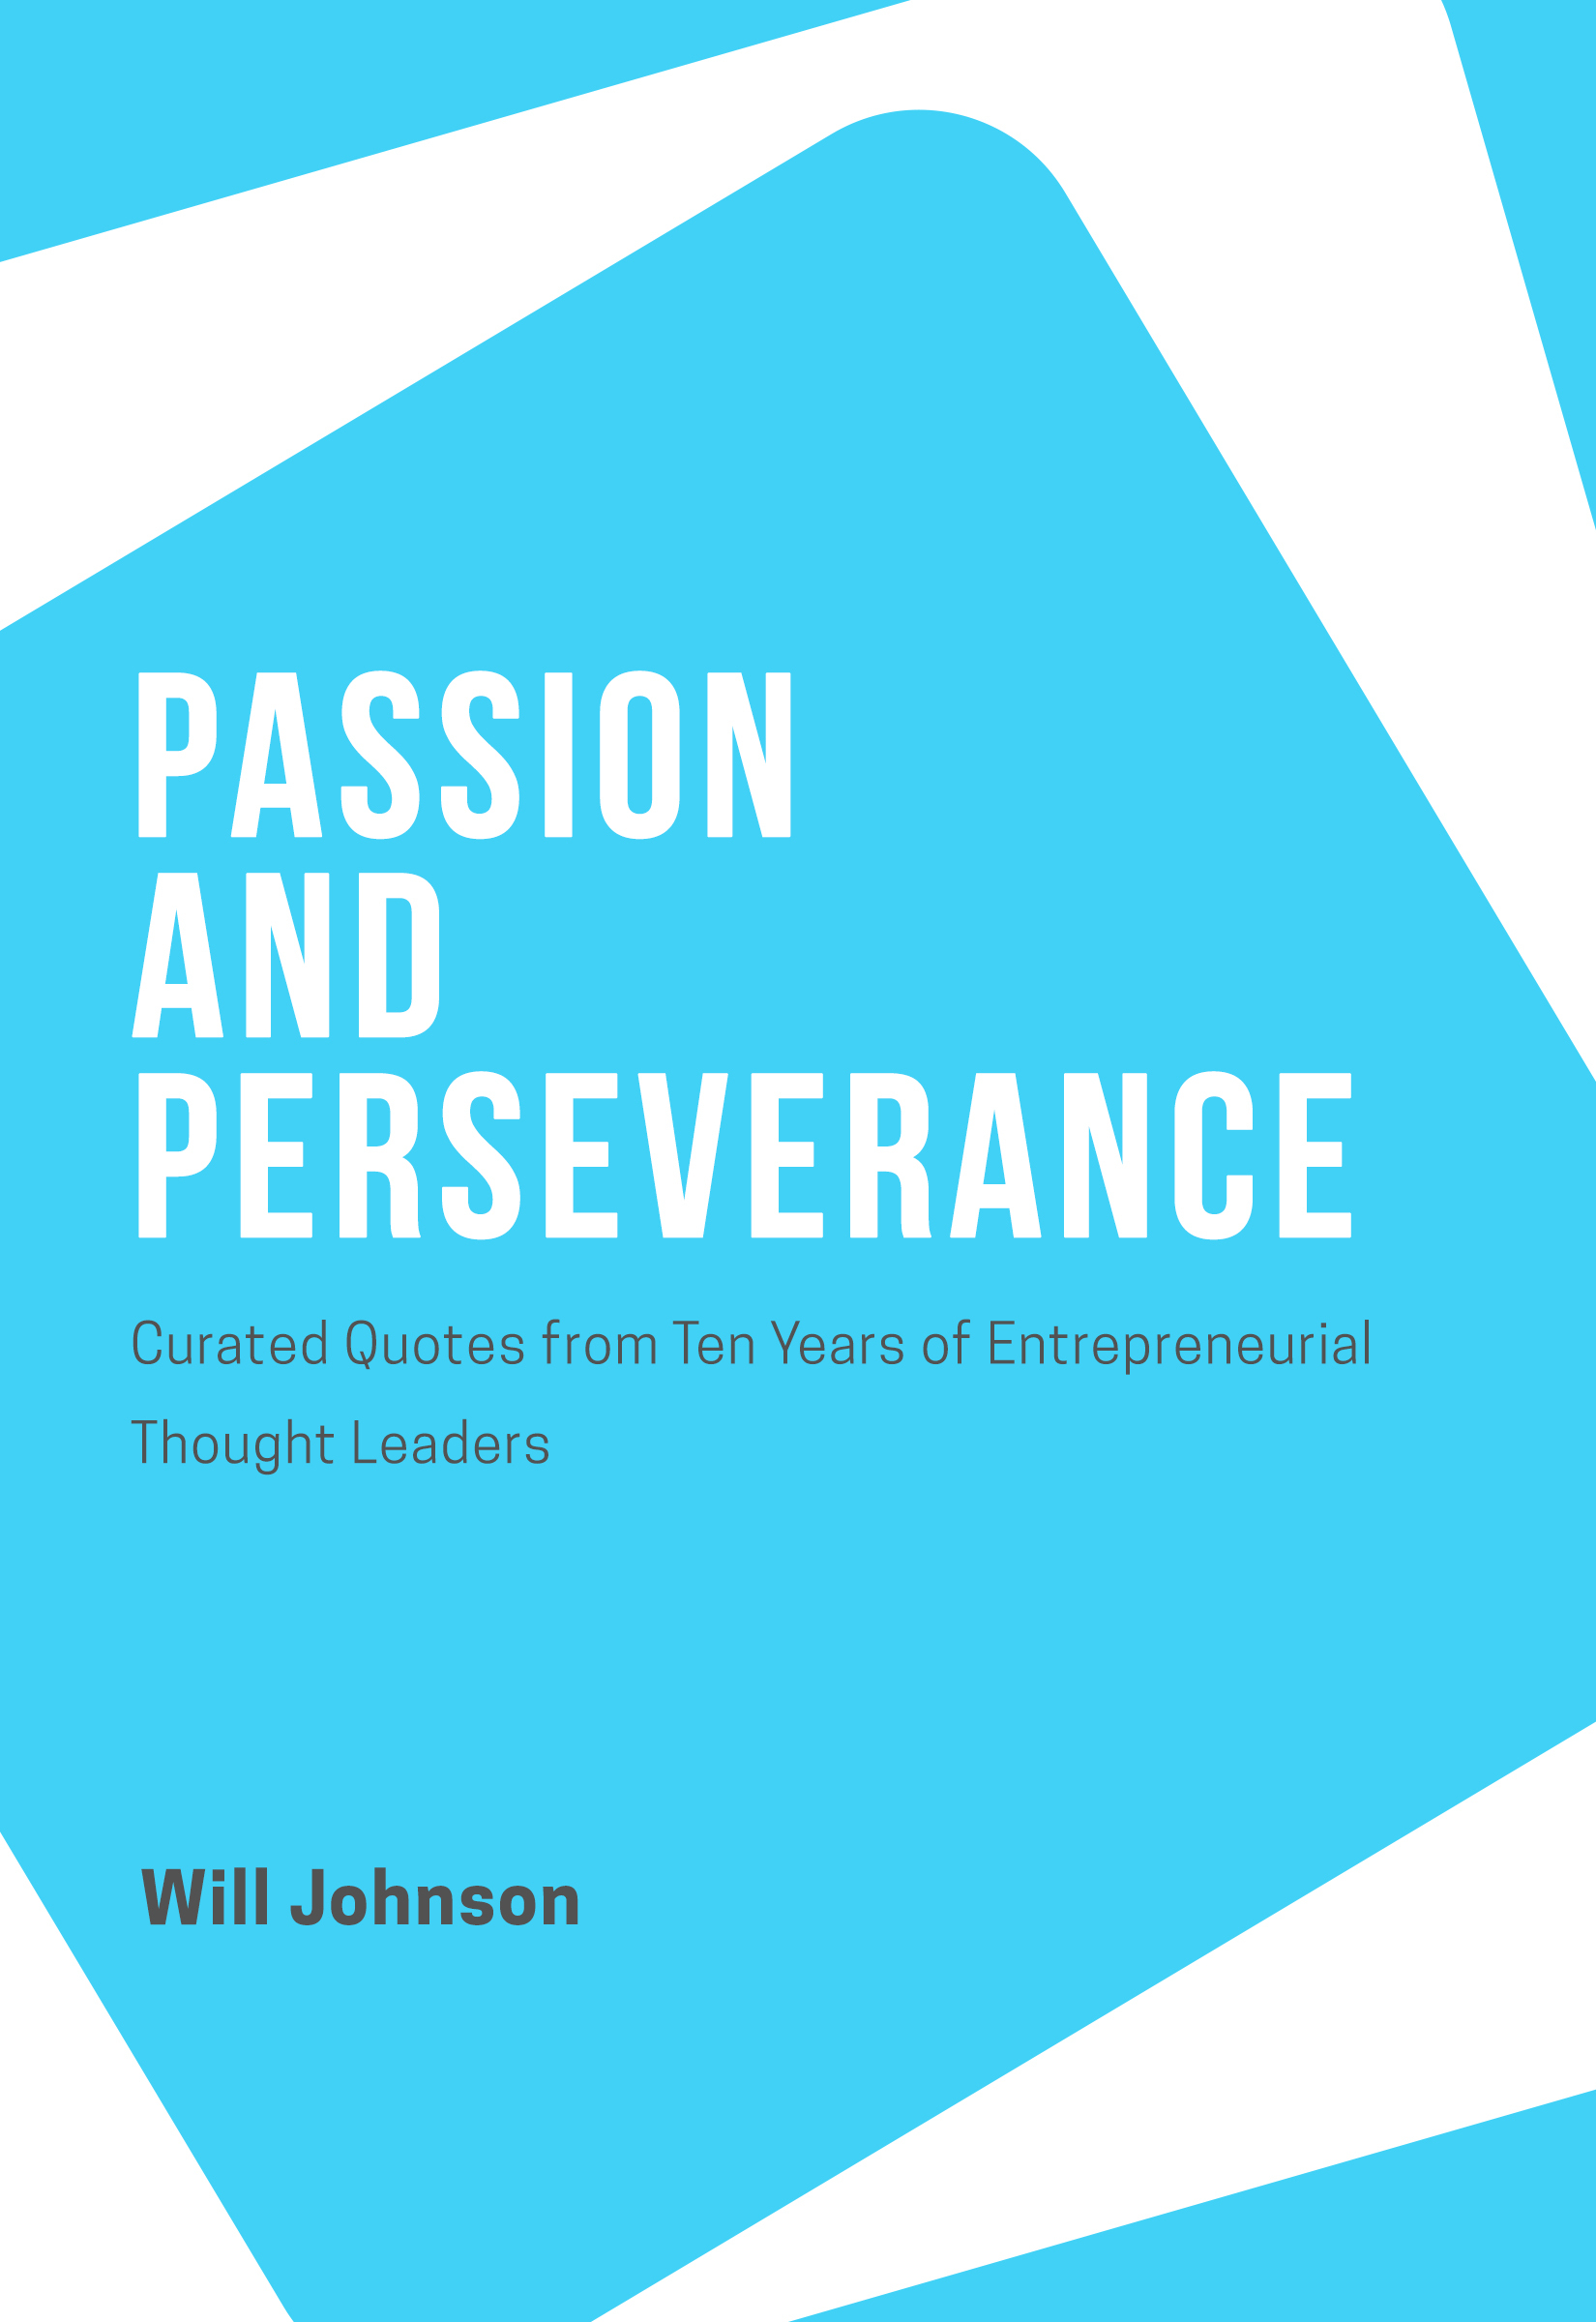 Passion and Perseverance: Curated Quotes from Ten Years of Entrepreneurial Thought Leaders